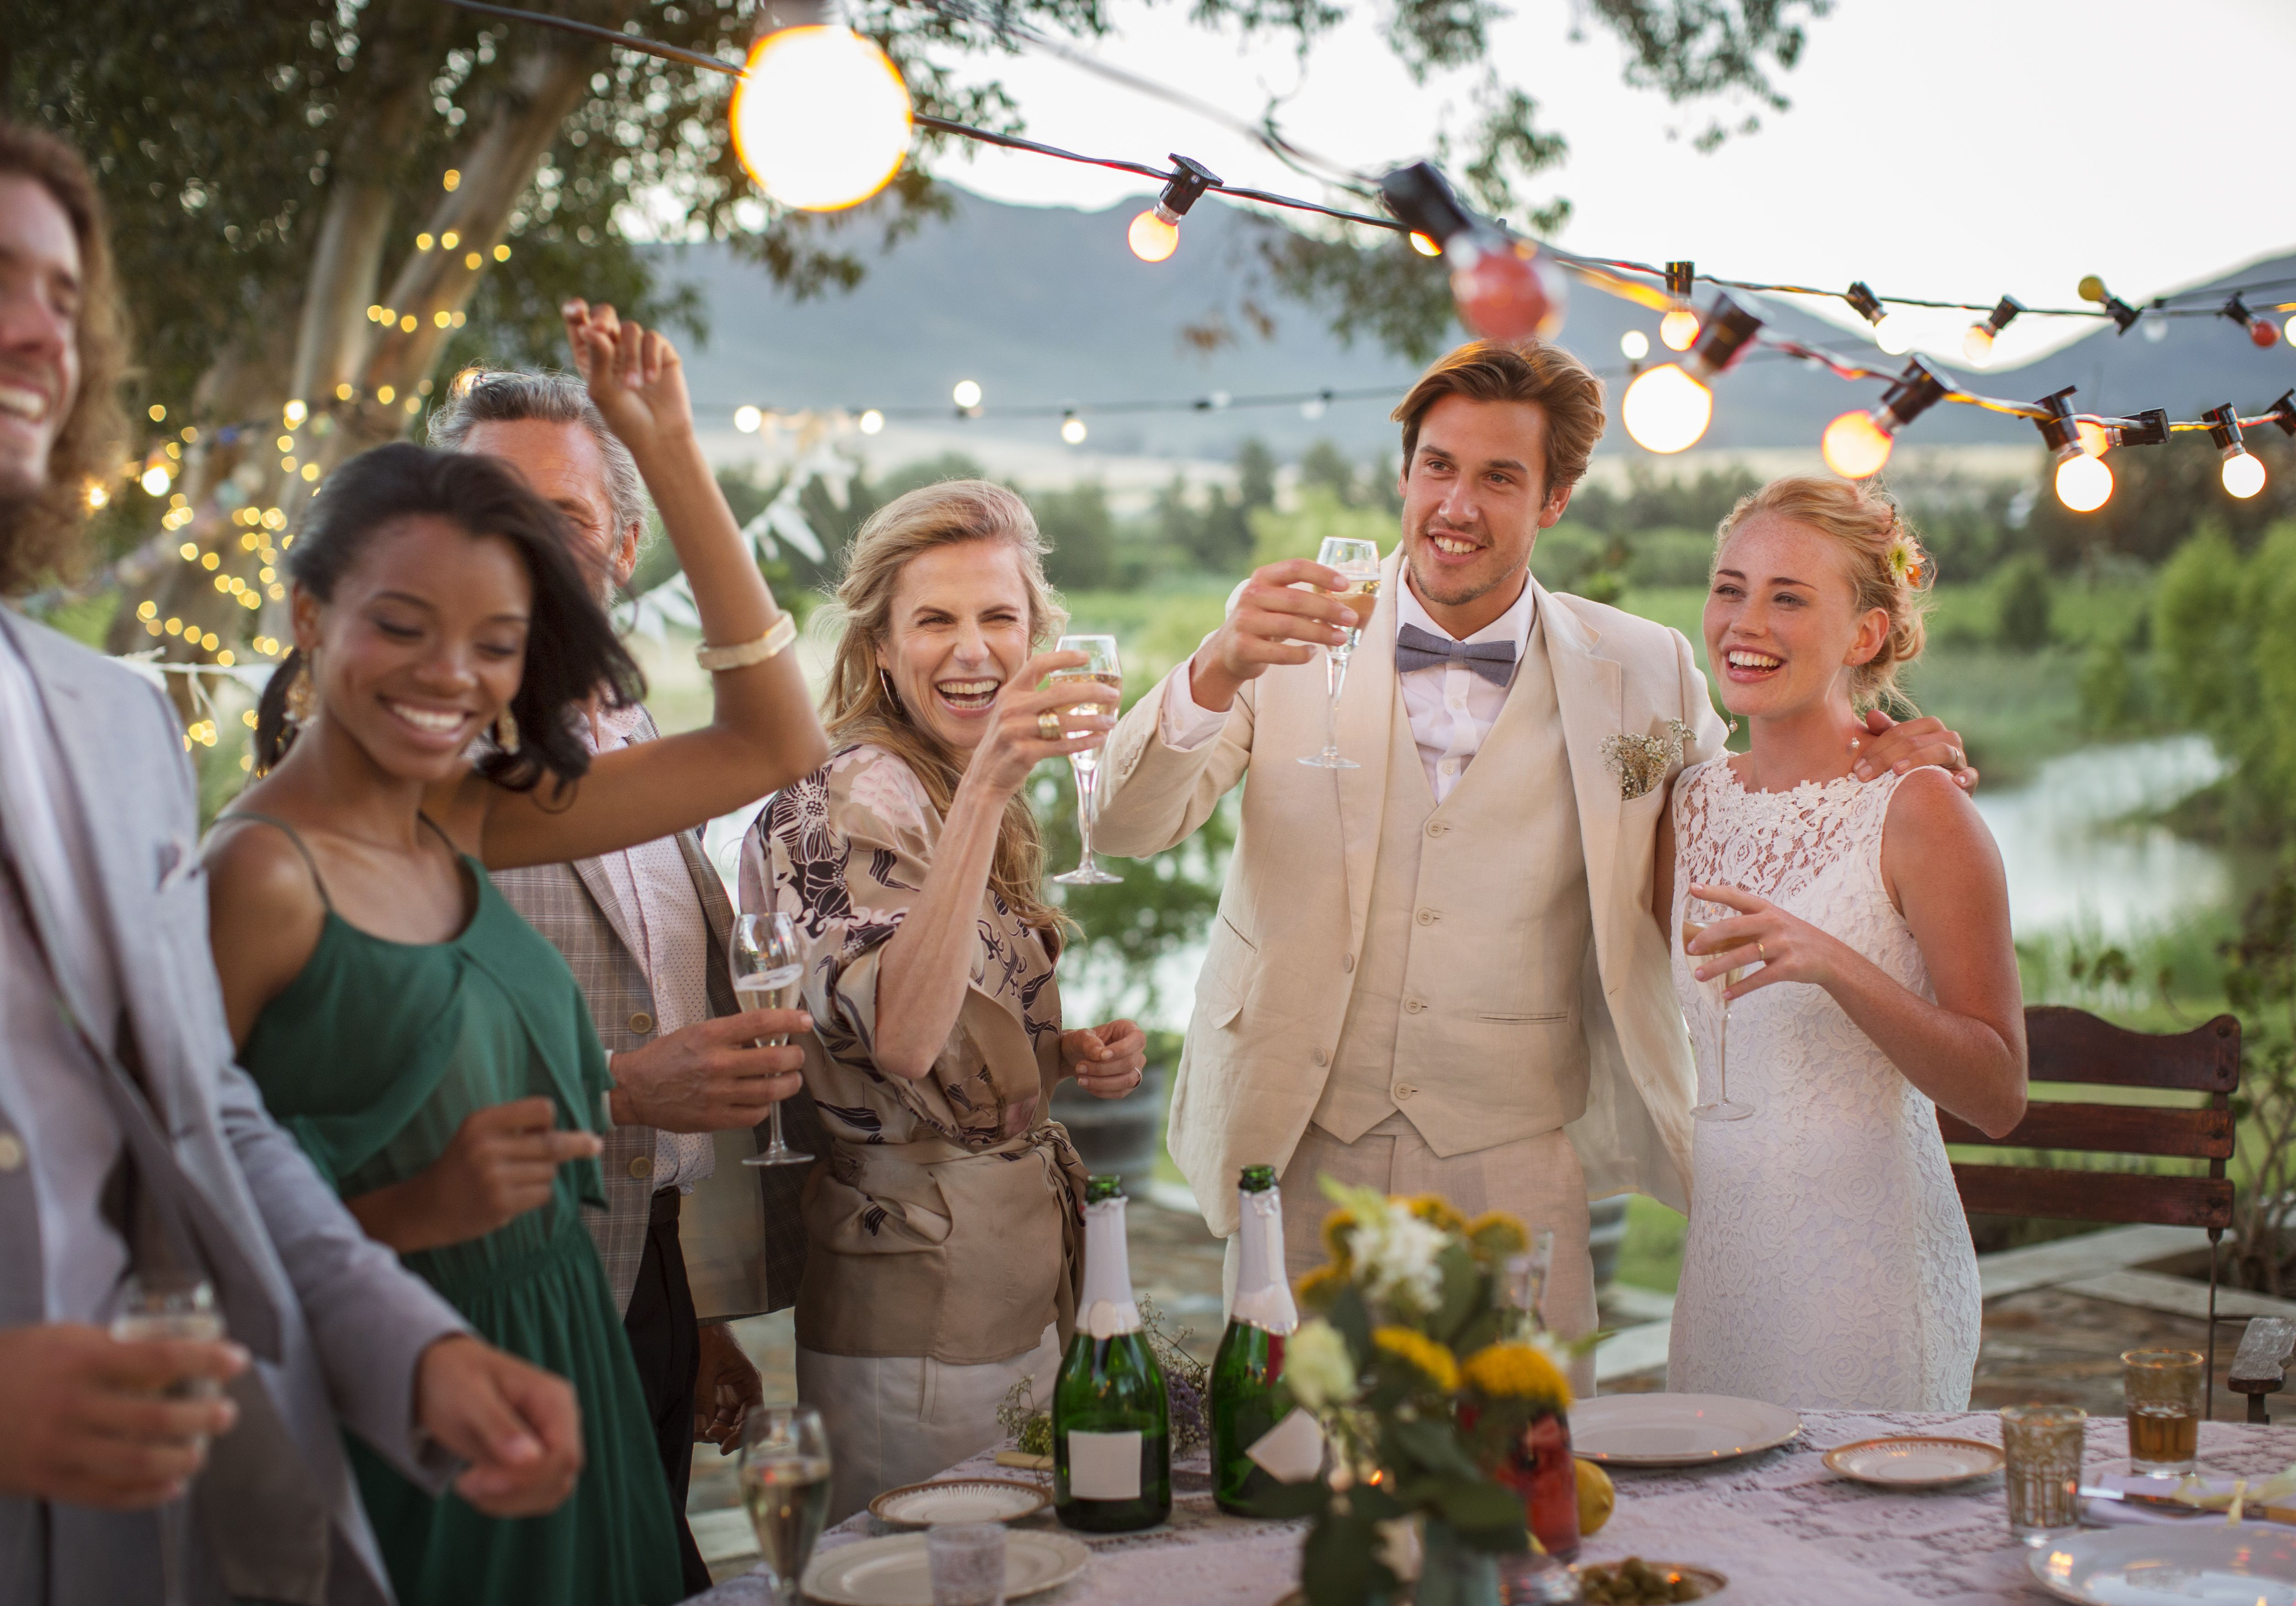 7 Free Wedding Guest List Templates and Managers